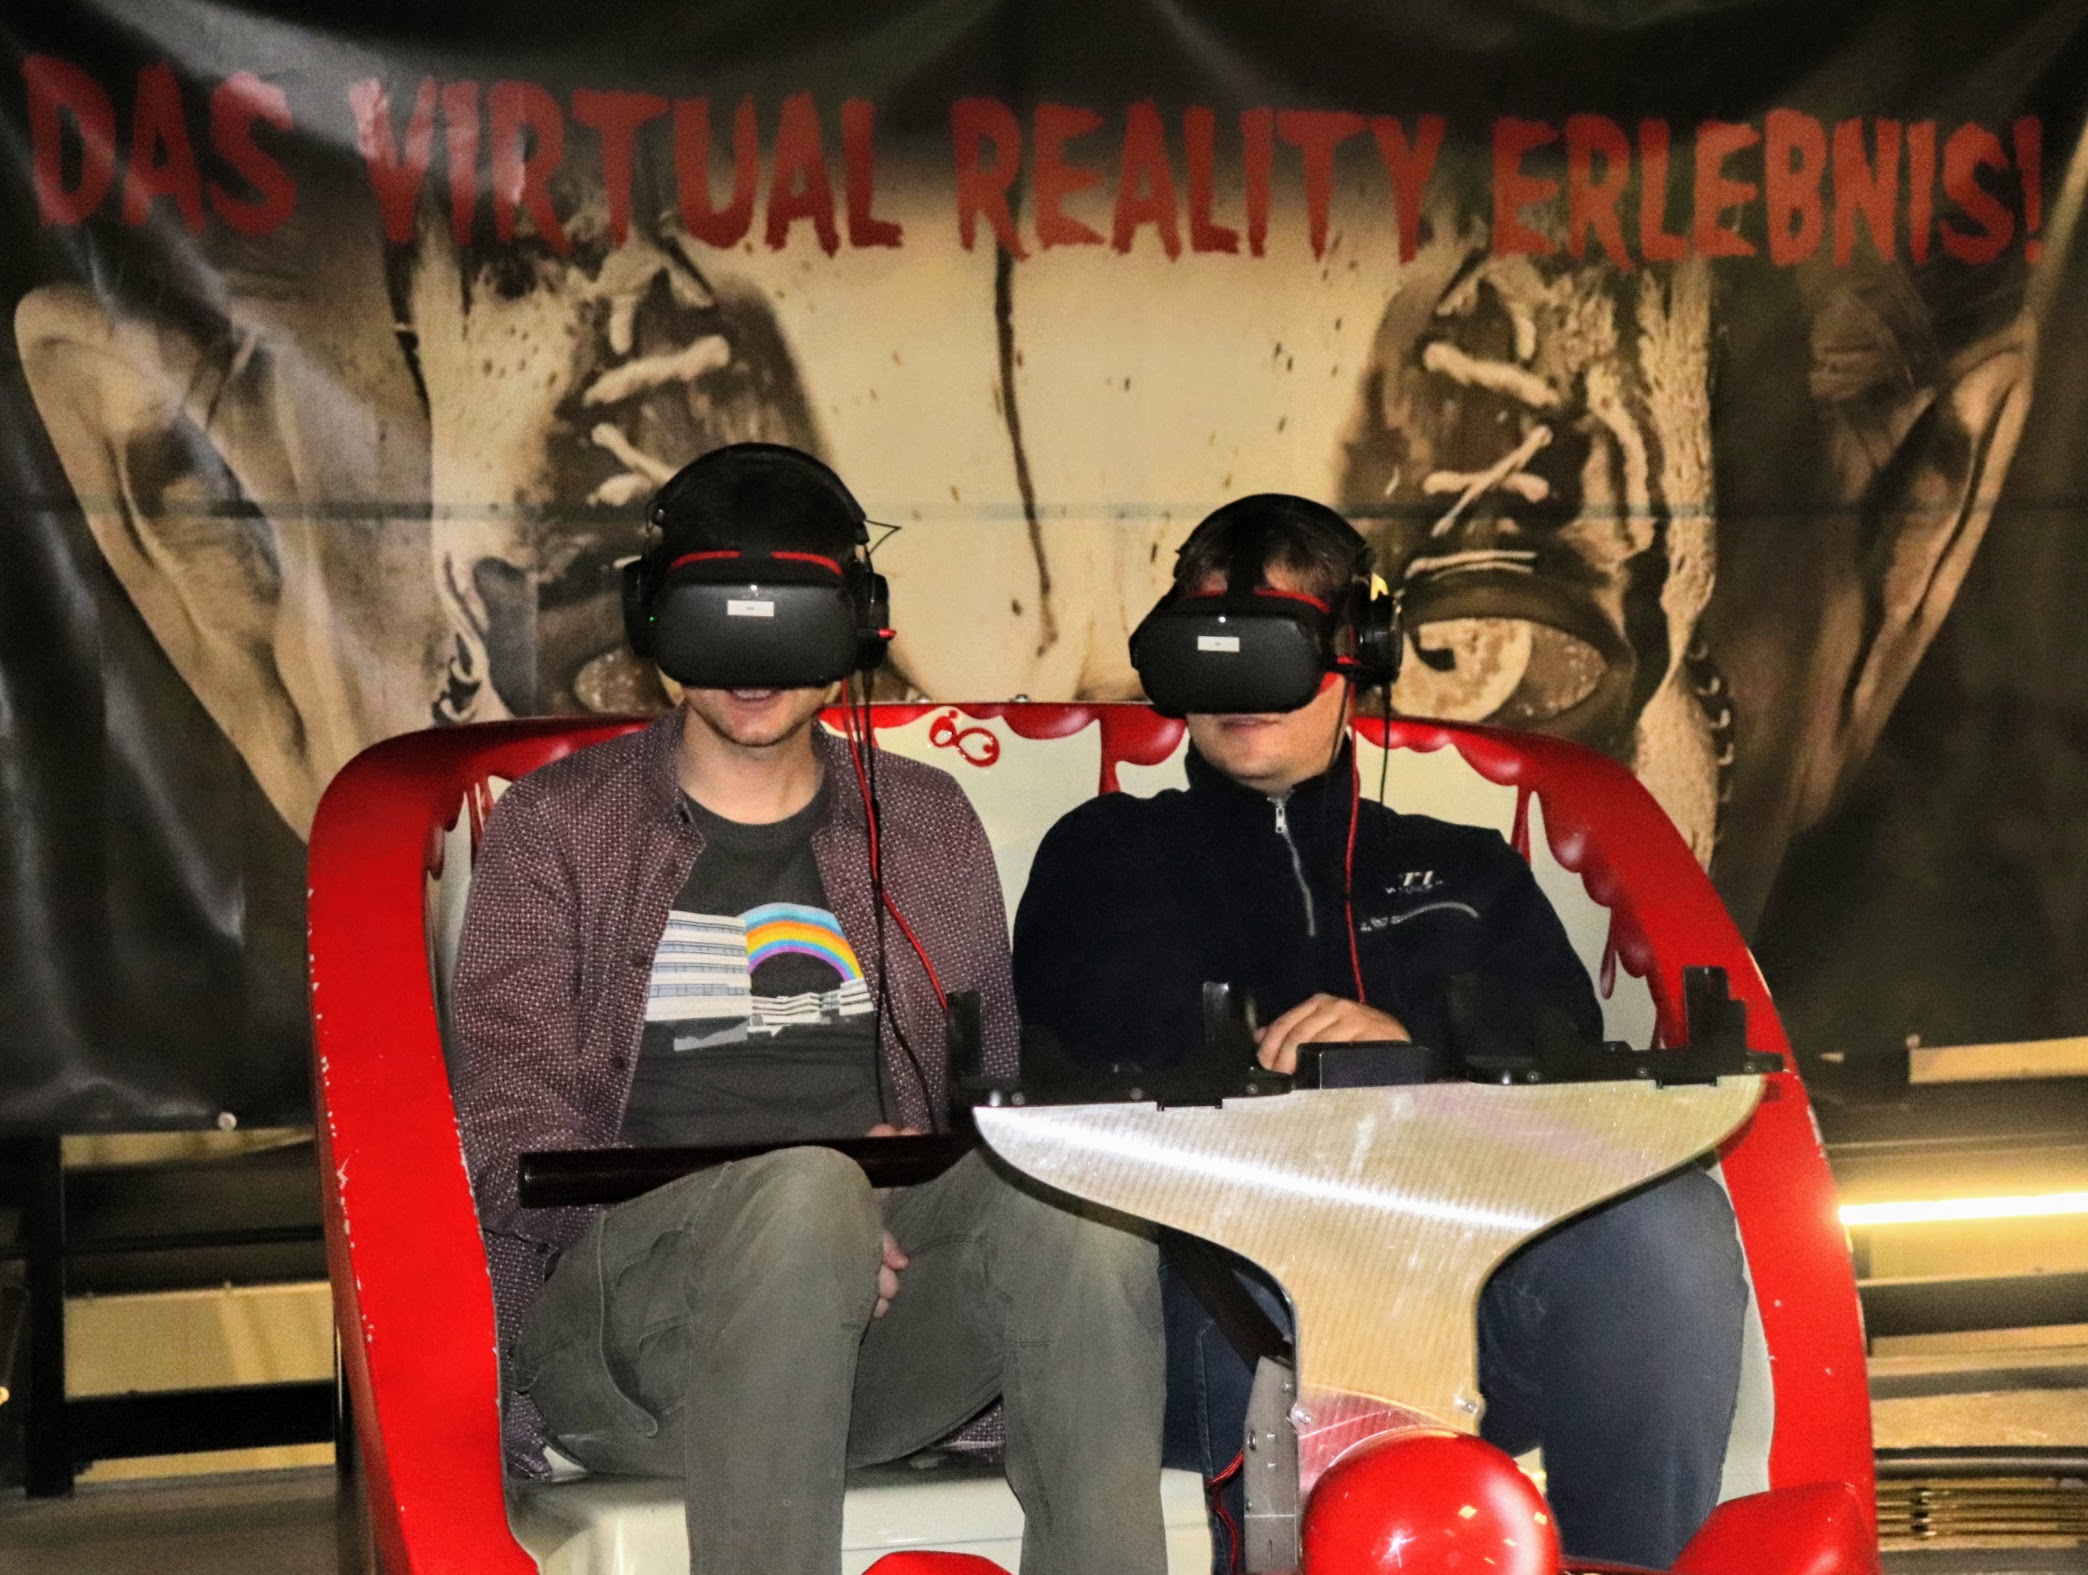 fun ride car with two people in it wearing VR headsets